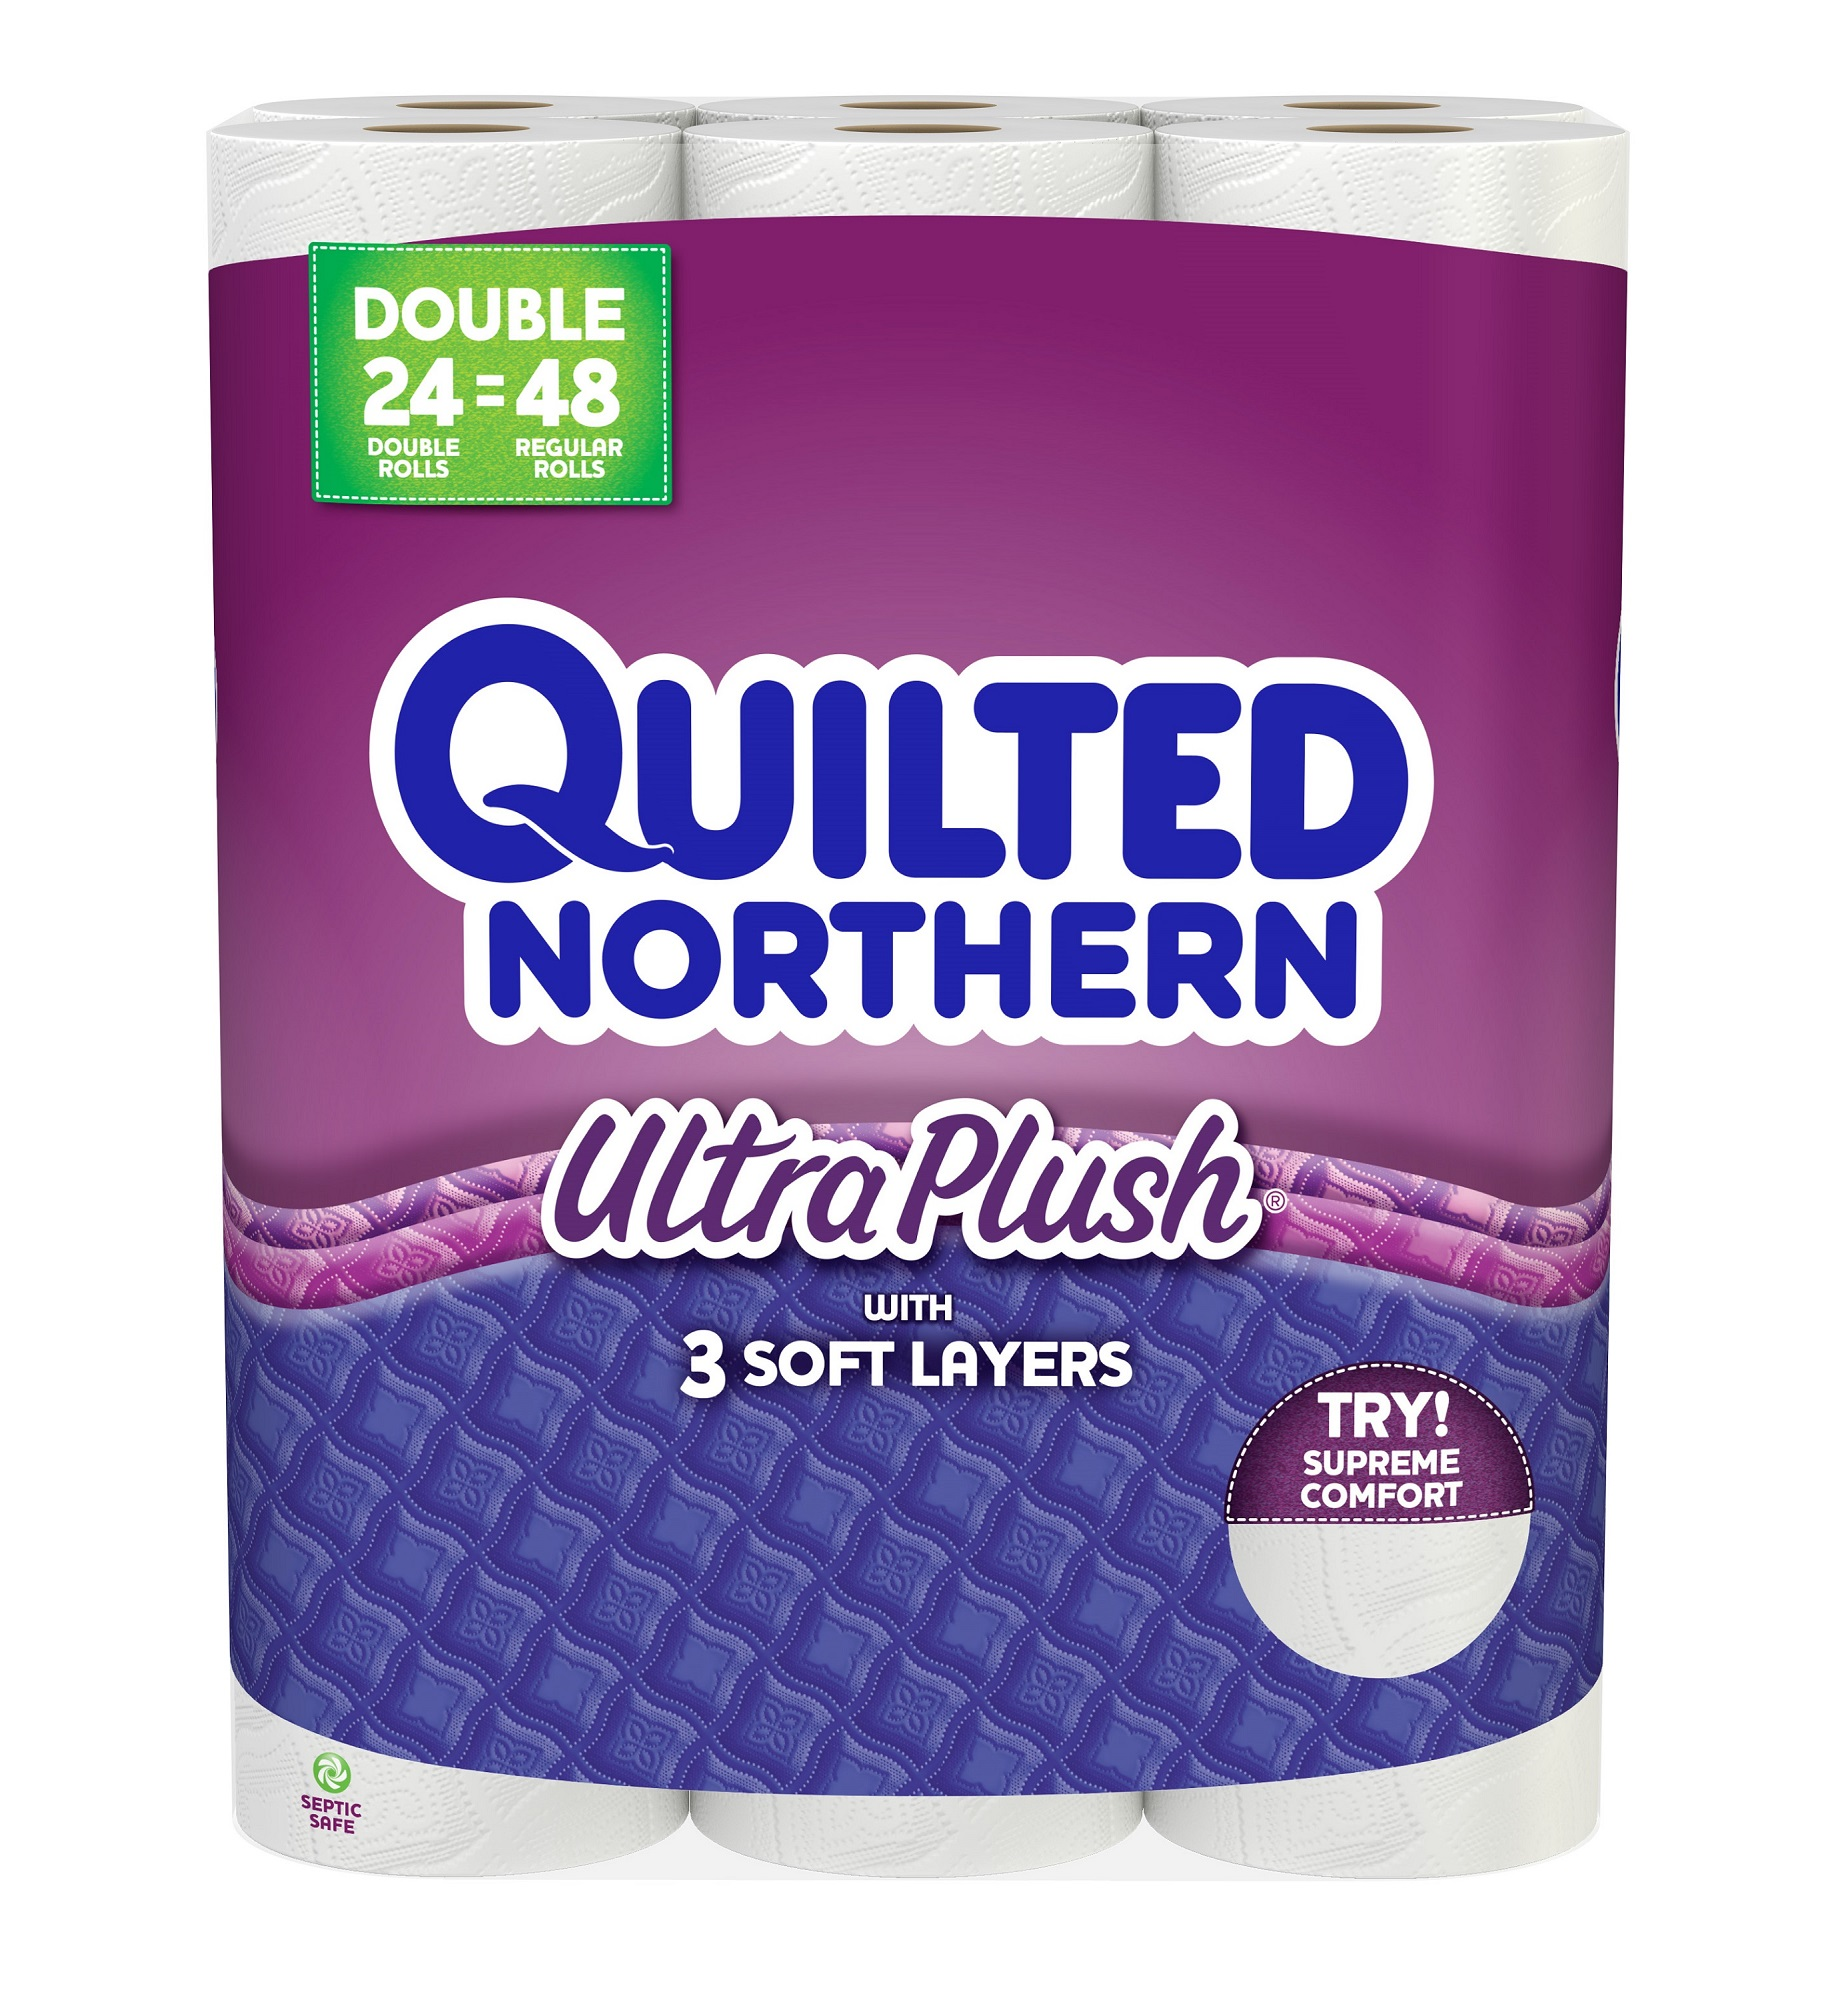 Quilted Northern Ultra Plush, 24 Double Rolls Toilet Paper, Bath Tissue